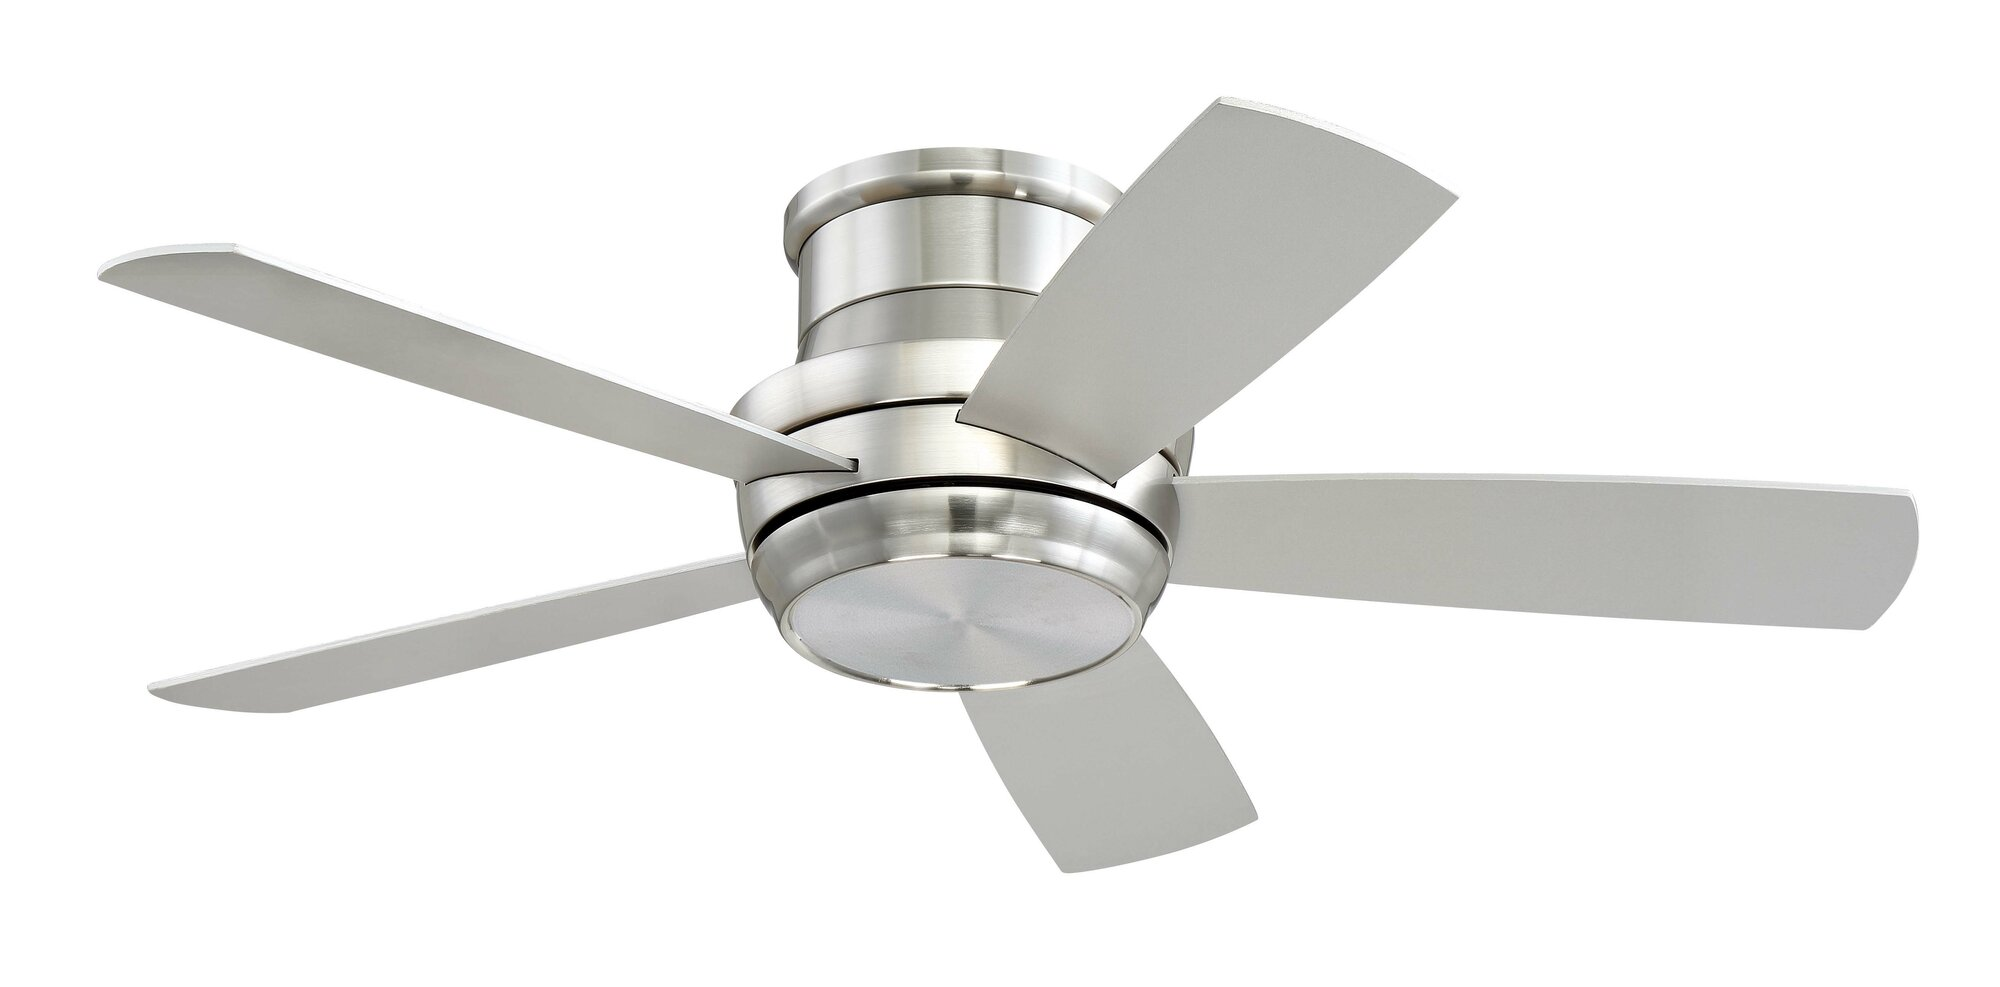 Blade Ceiling Fan With Remote Our Sku Lrun7514 Mpn 39730594